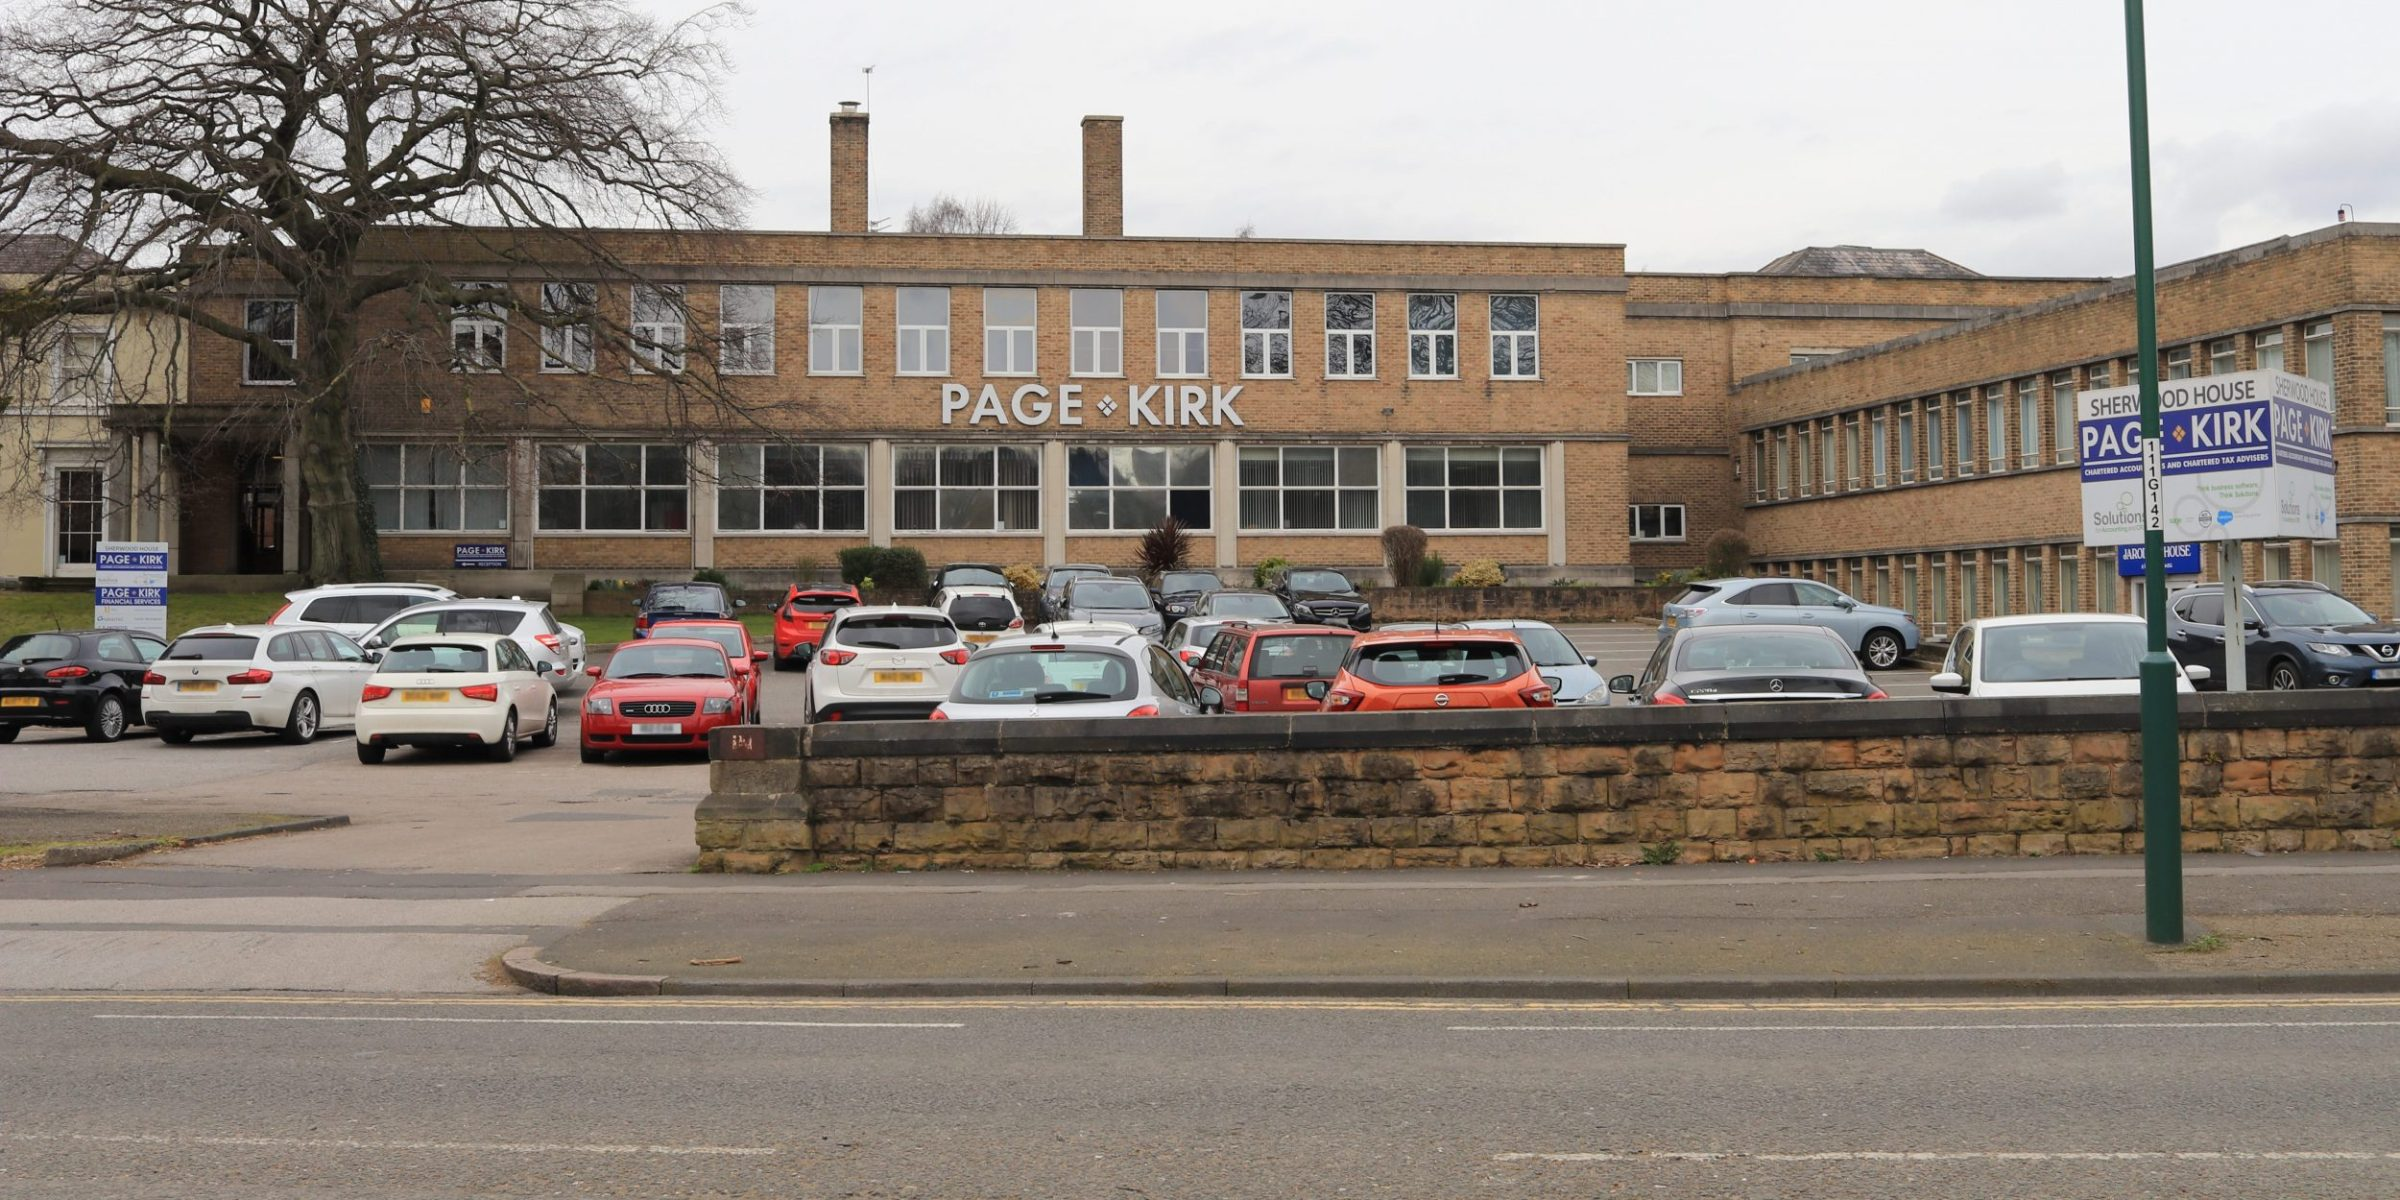 Optimise Systems at Sherwood House Page Kirk